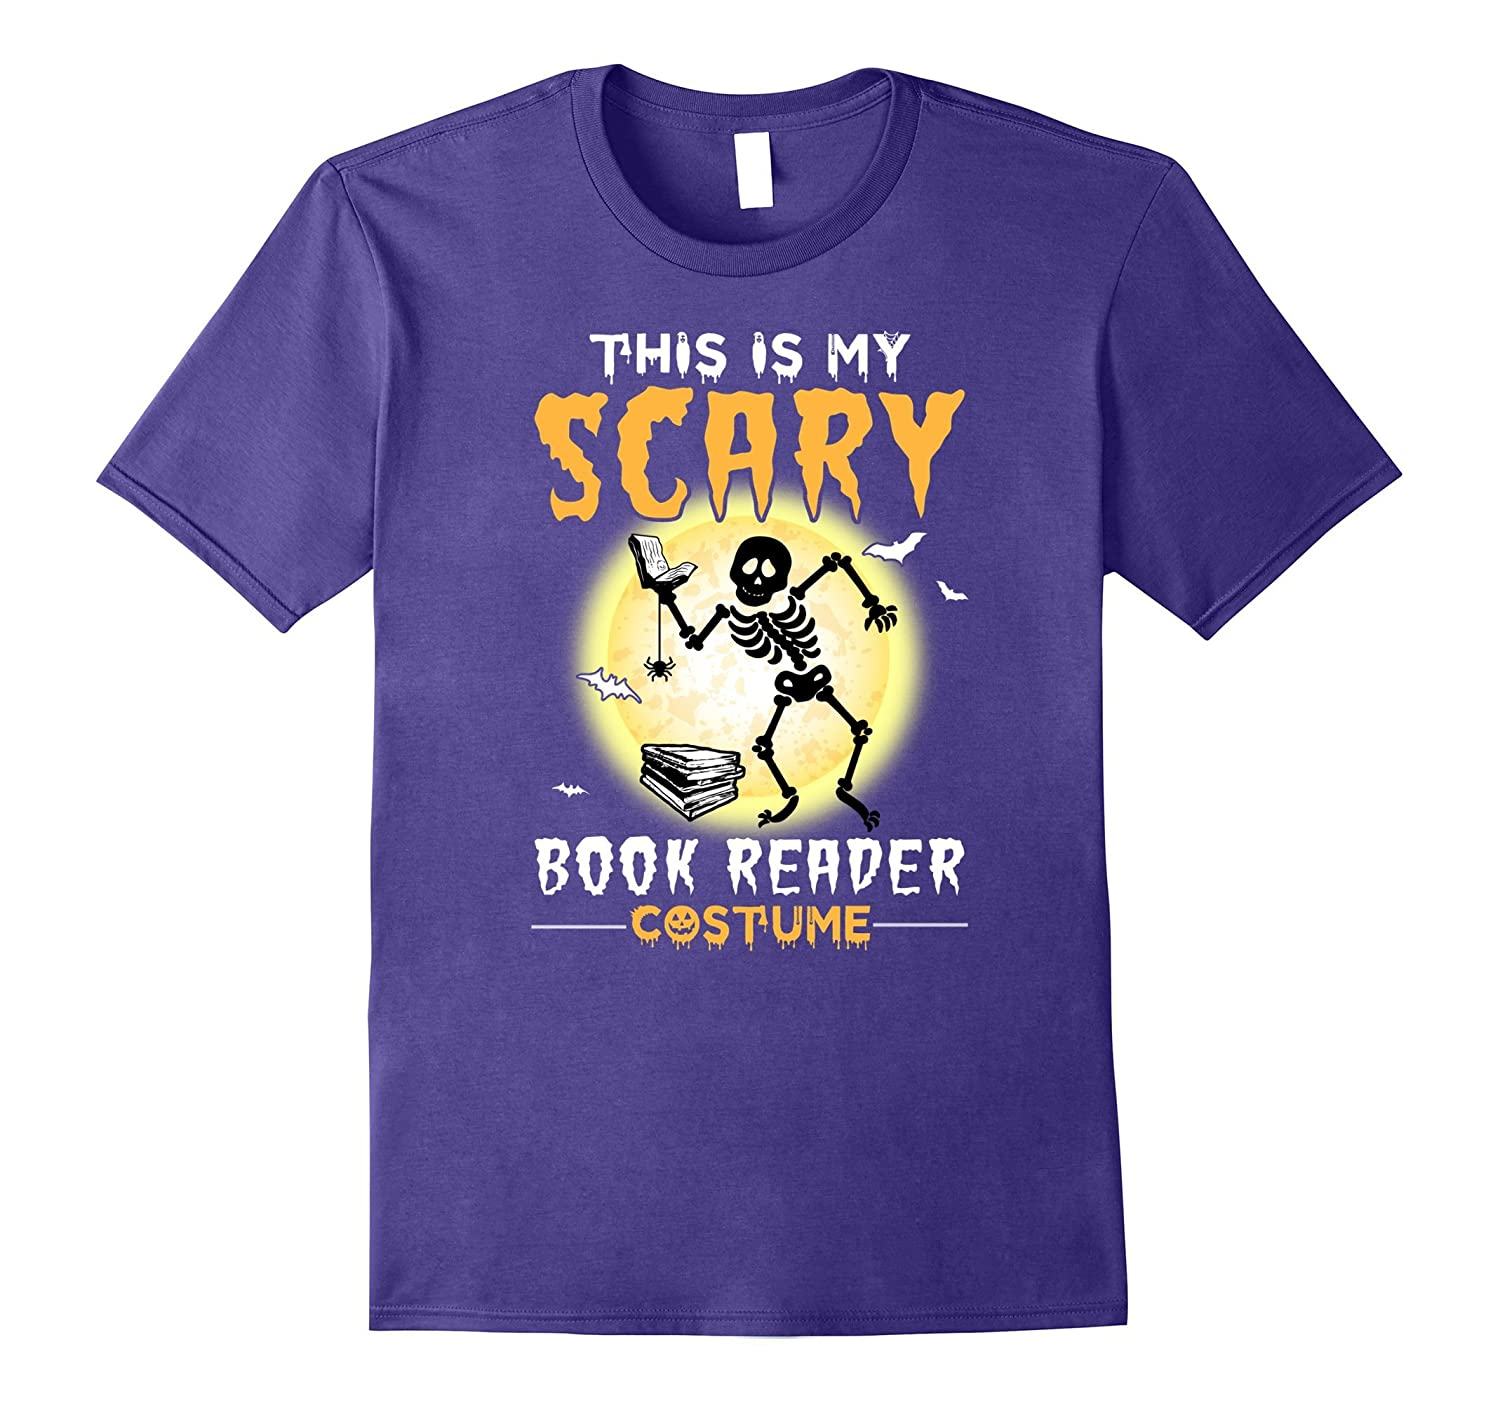 This is My Scary Book Reader Halloween Costume T-Shirt-TJ